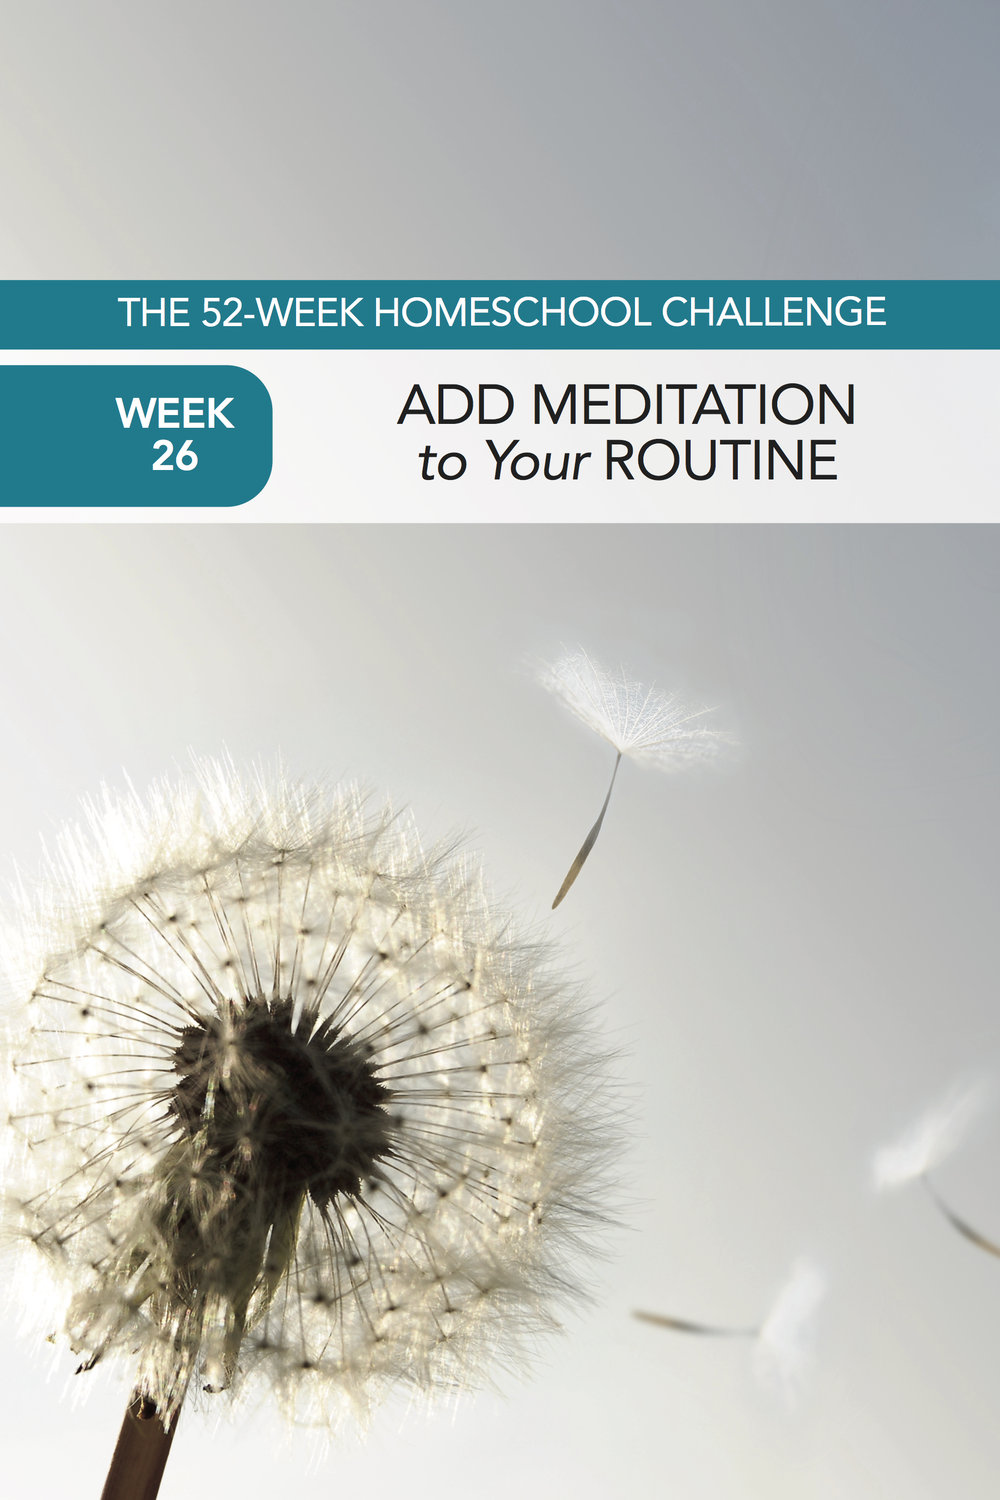 52 Weeks of Happier Homeschooling Week 26: Add Meditation to Your Routine